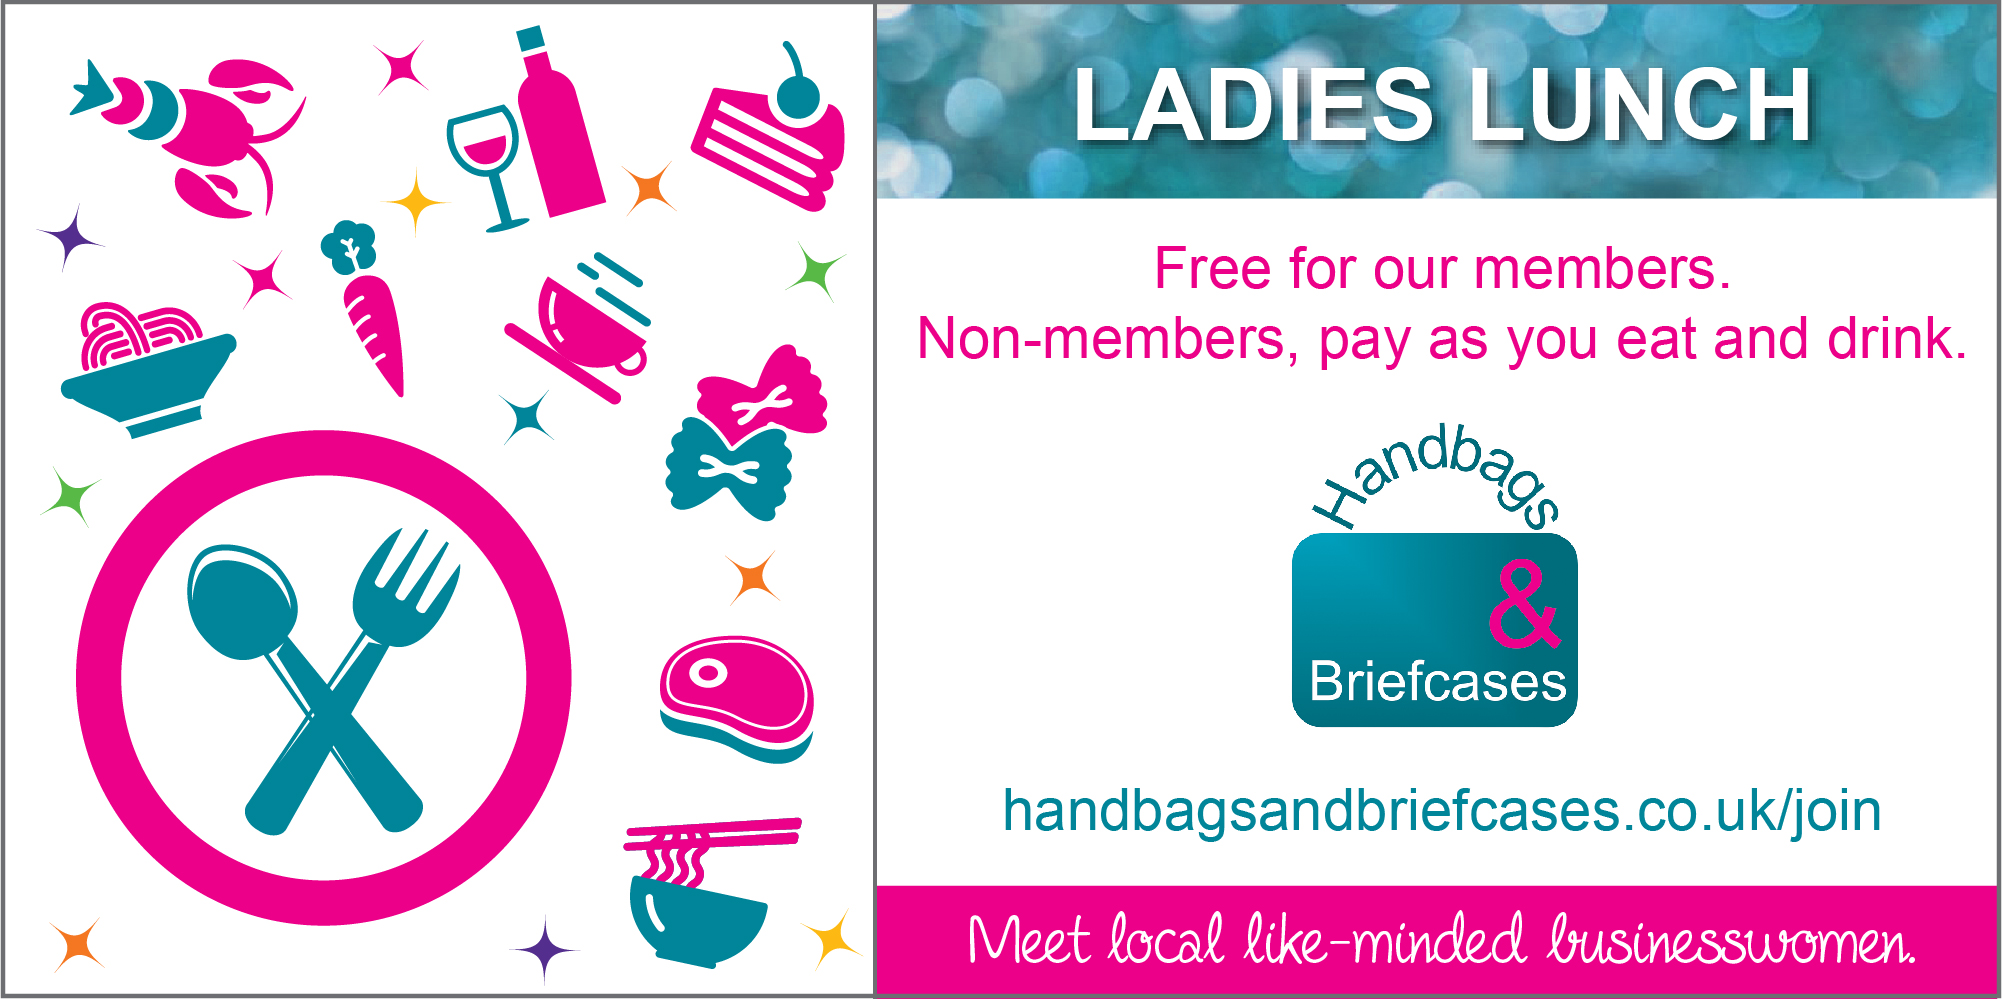 Book our February Ladies Lunch